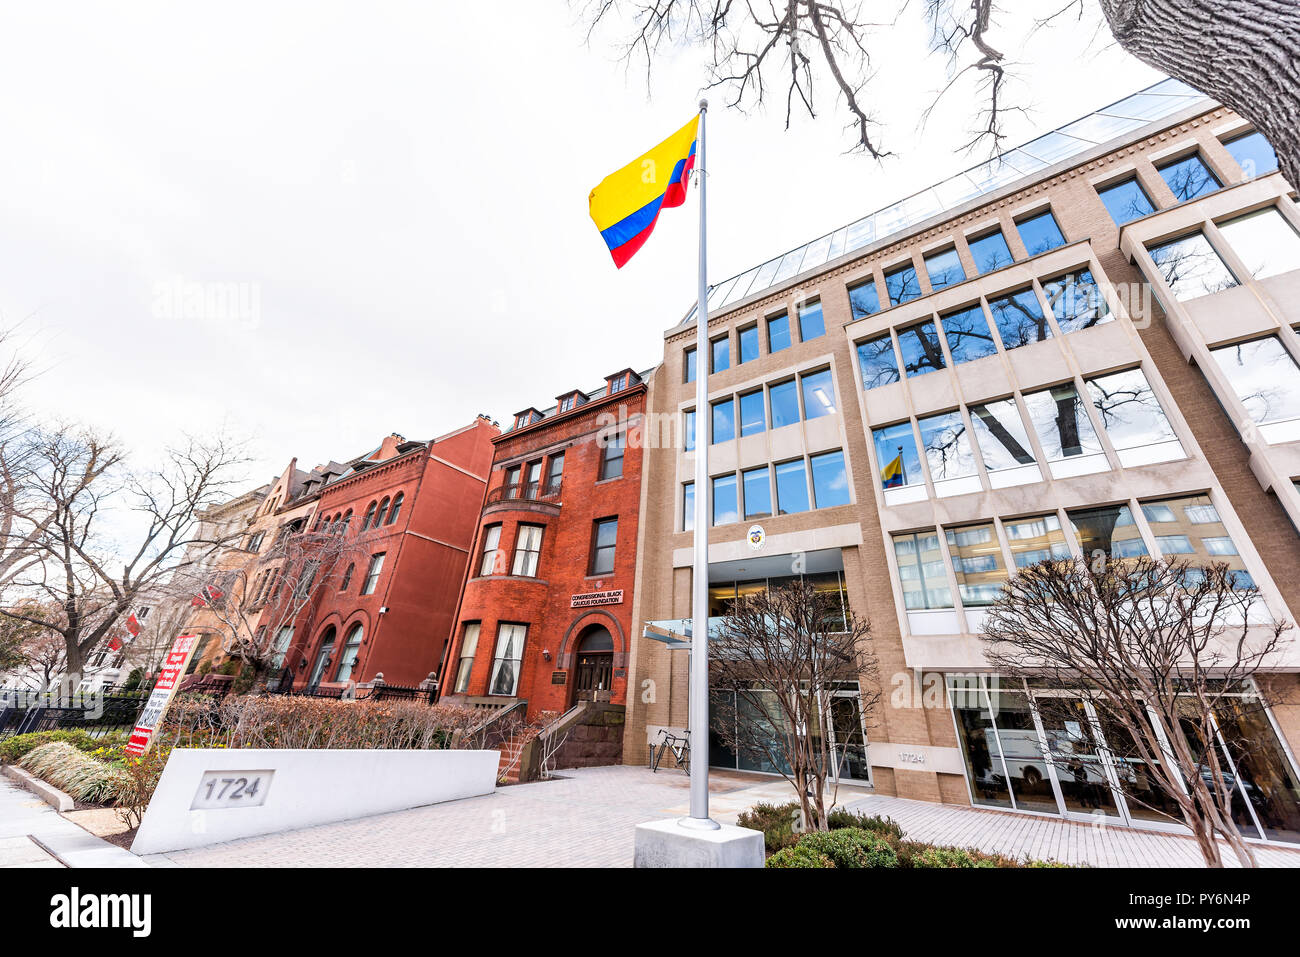 Washington DC, USA - March 9, 2018: Republic of Colombia embassy, colorful flag by entrance in capital city, nobody, exterior, Congressional Black Cau - Stock Image